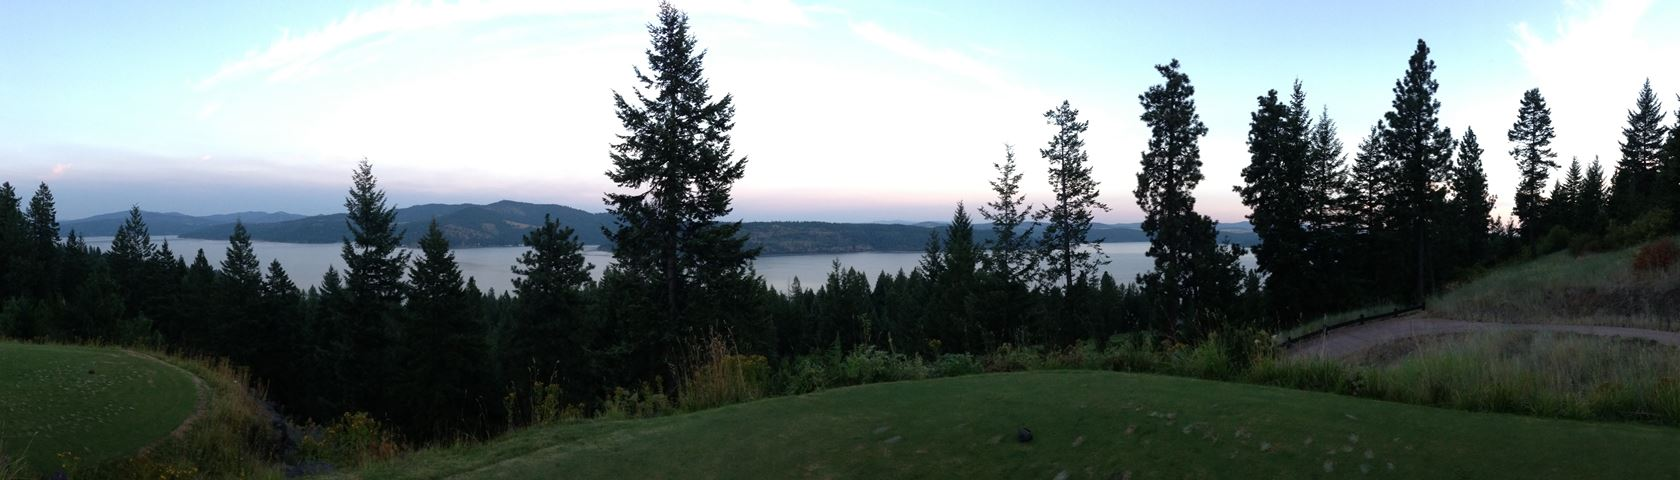 Another Coeur D'Alene Summer